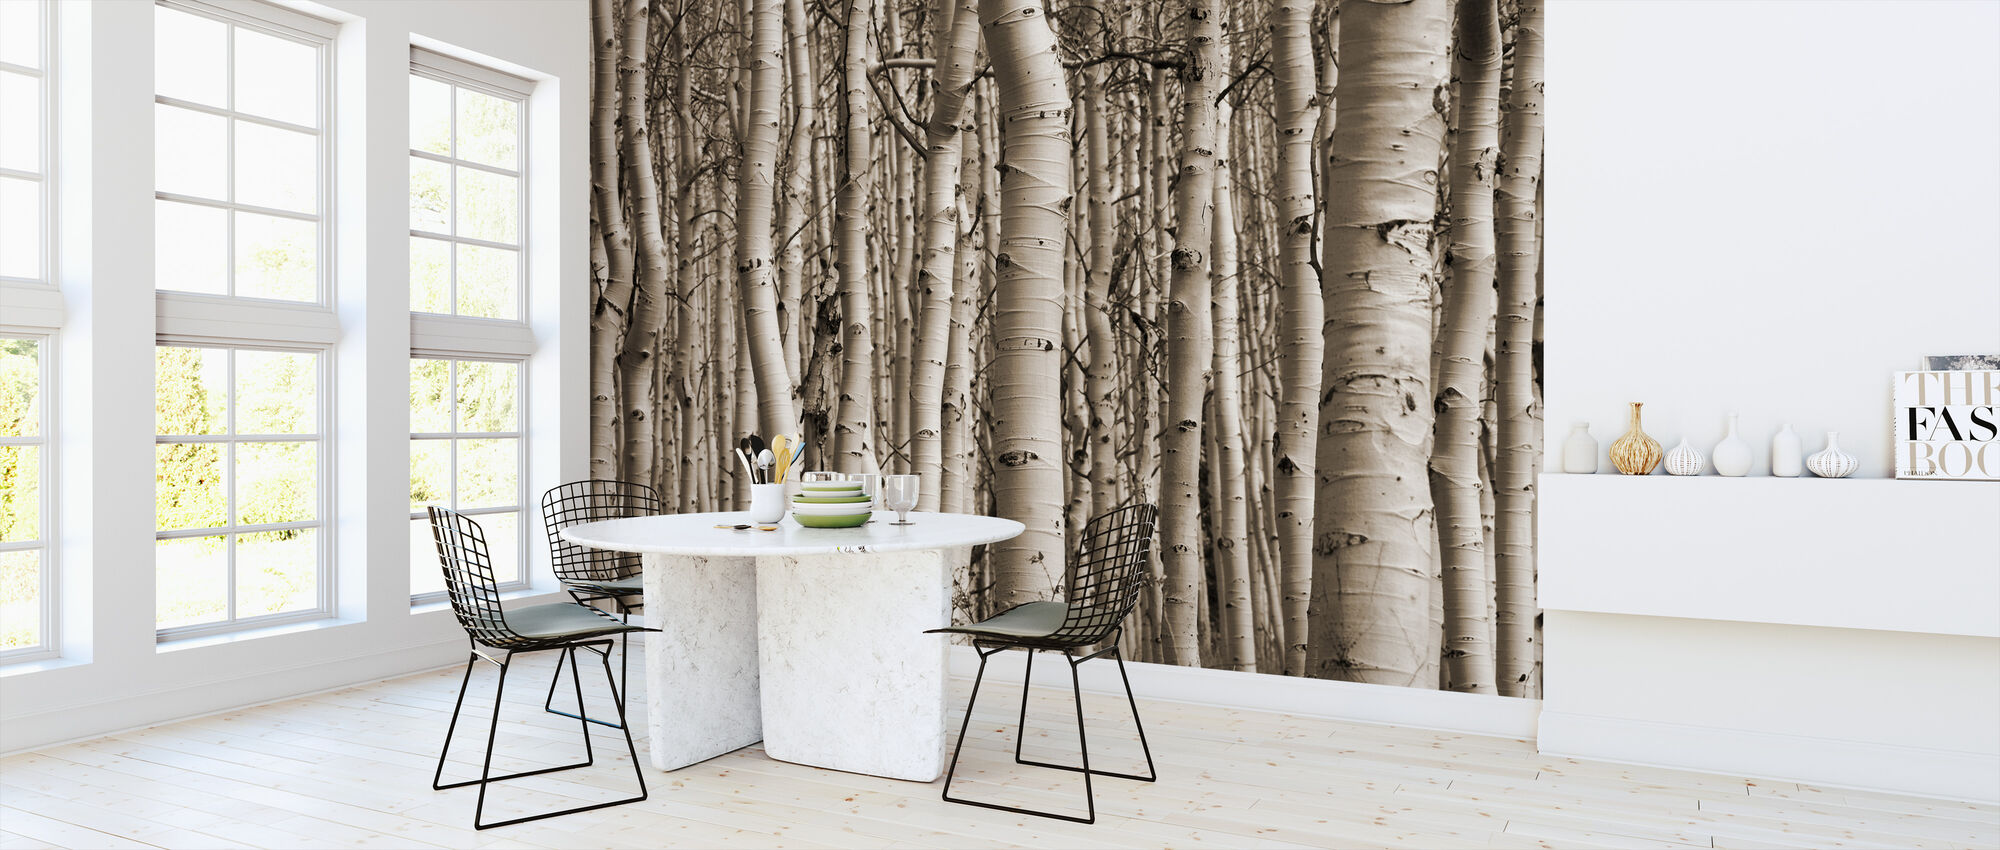 Aspen Forest - Wallpaper - Kitchen